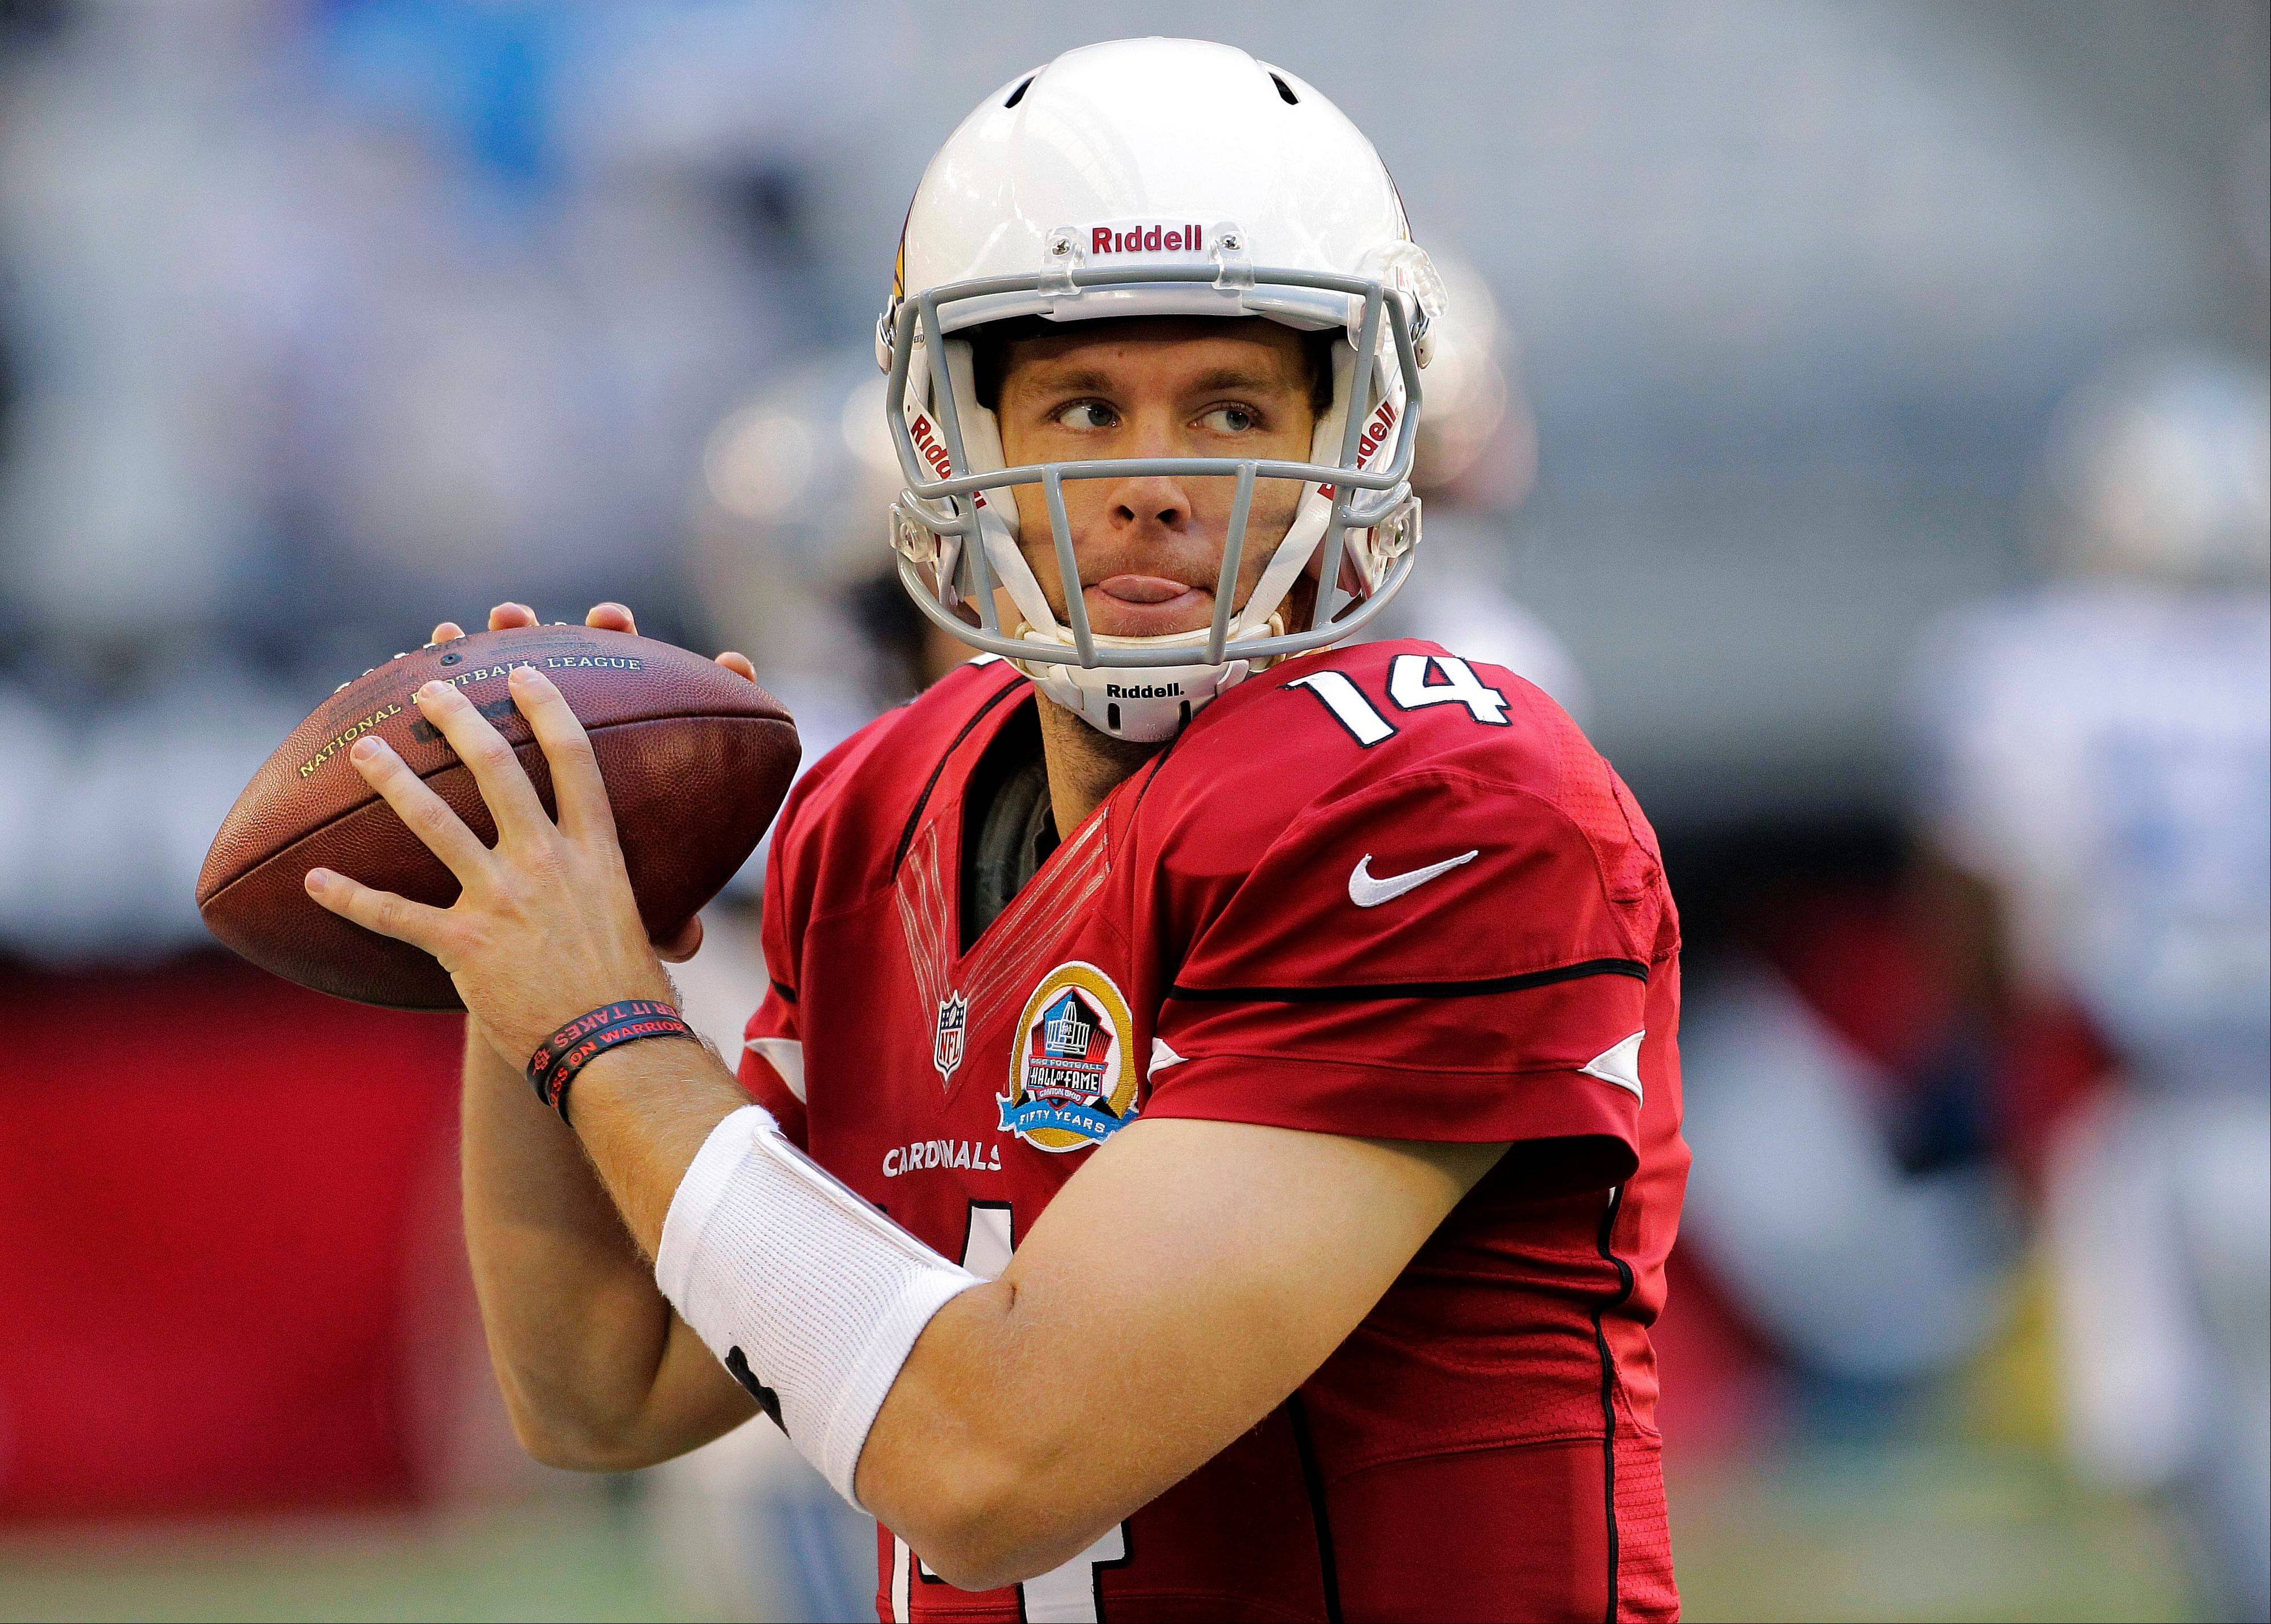 Cardinals rookie quarterback Ryan Lindley will be making his fourth NFL start Sunday when the Bears visit Arizona.